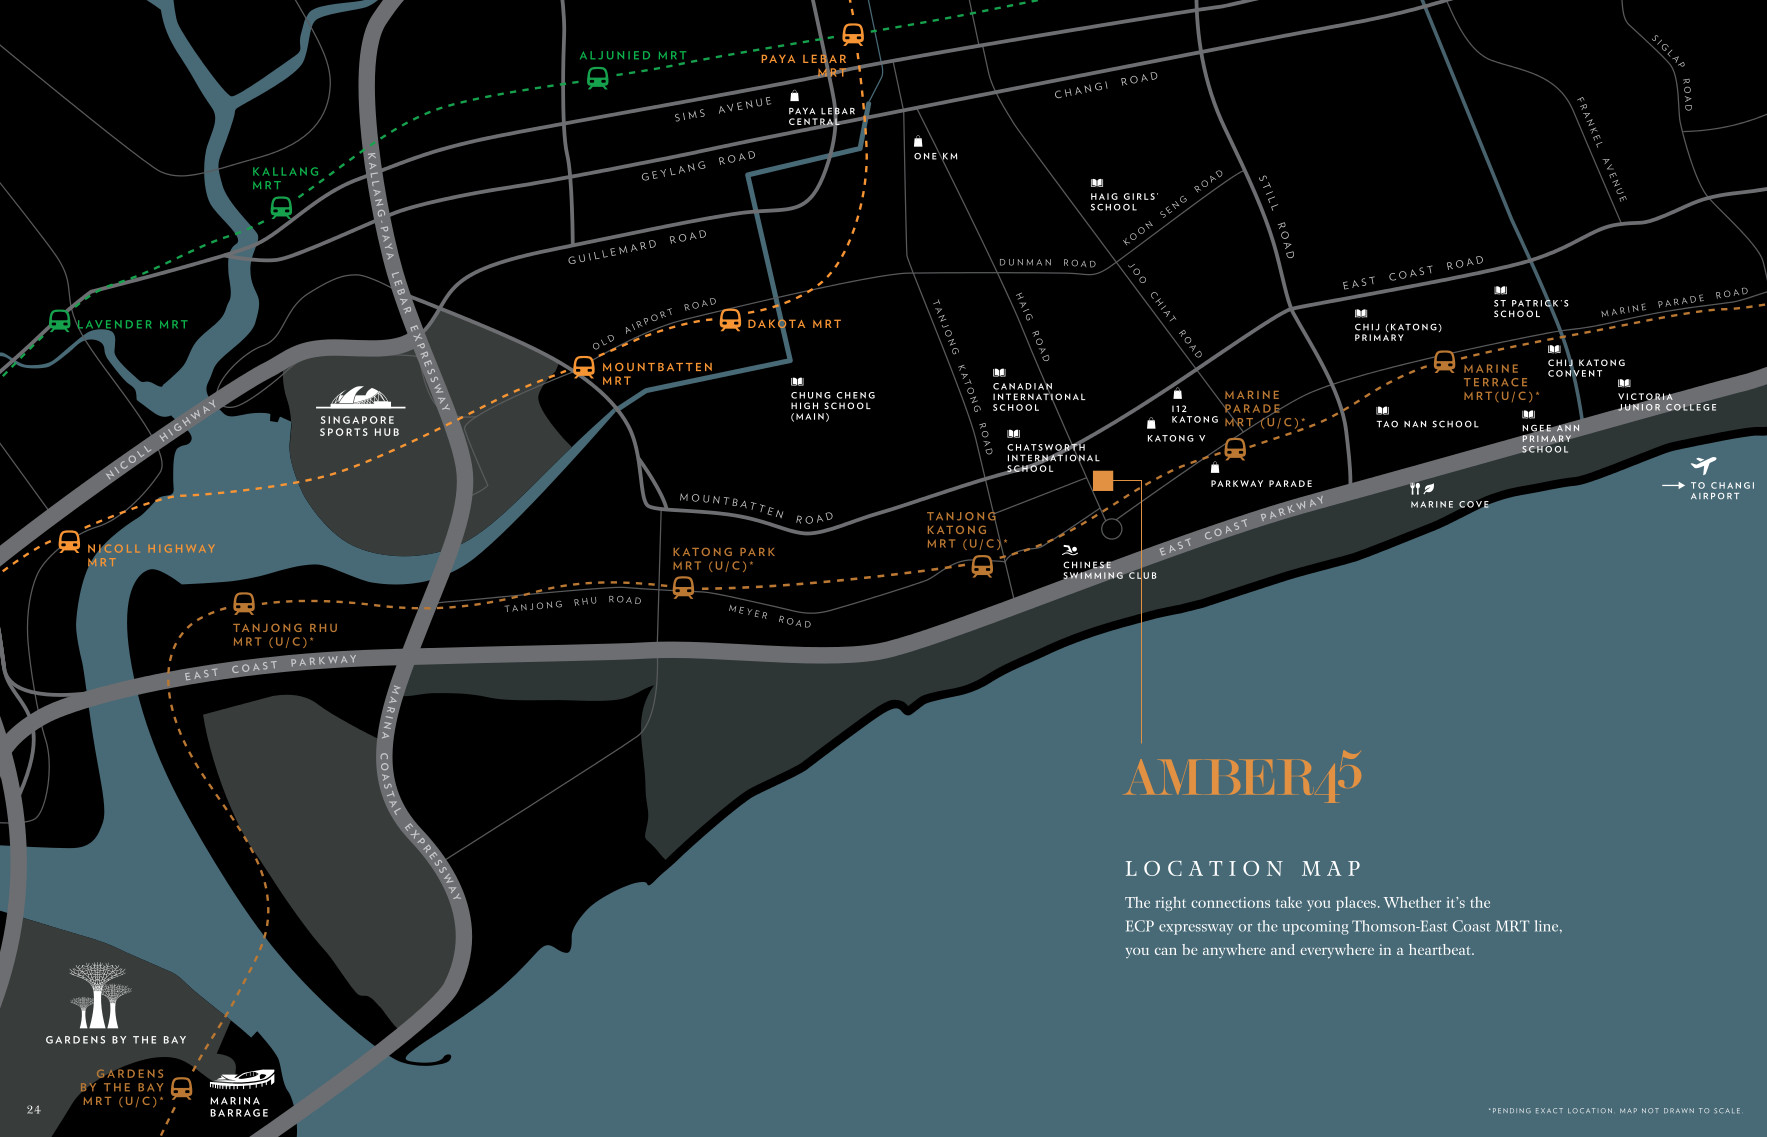 Amber45 Location Map